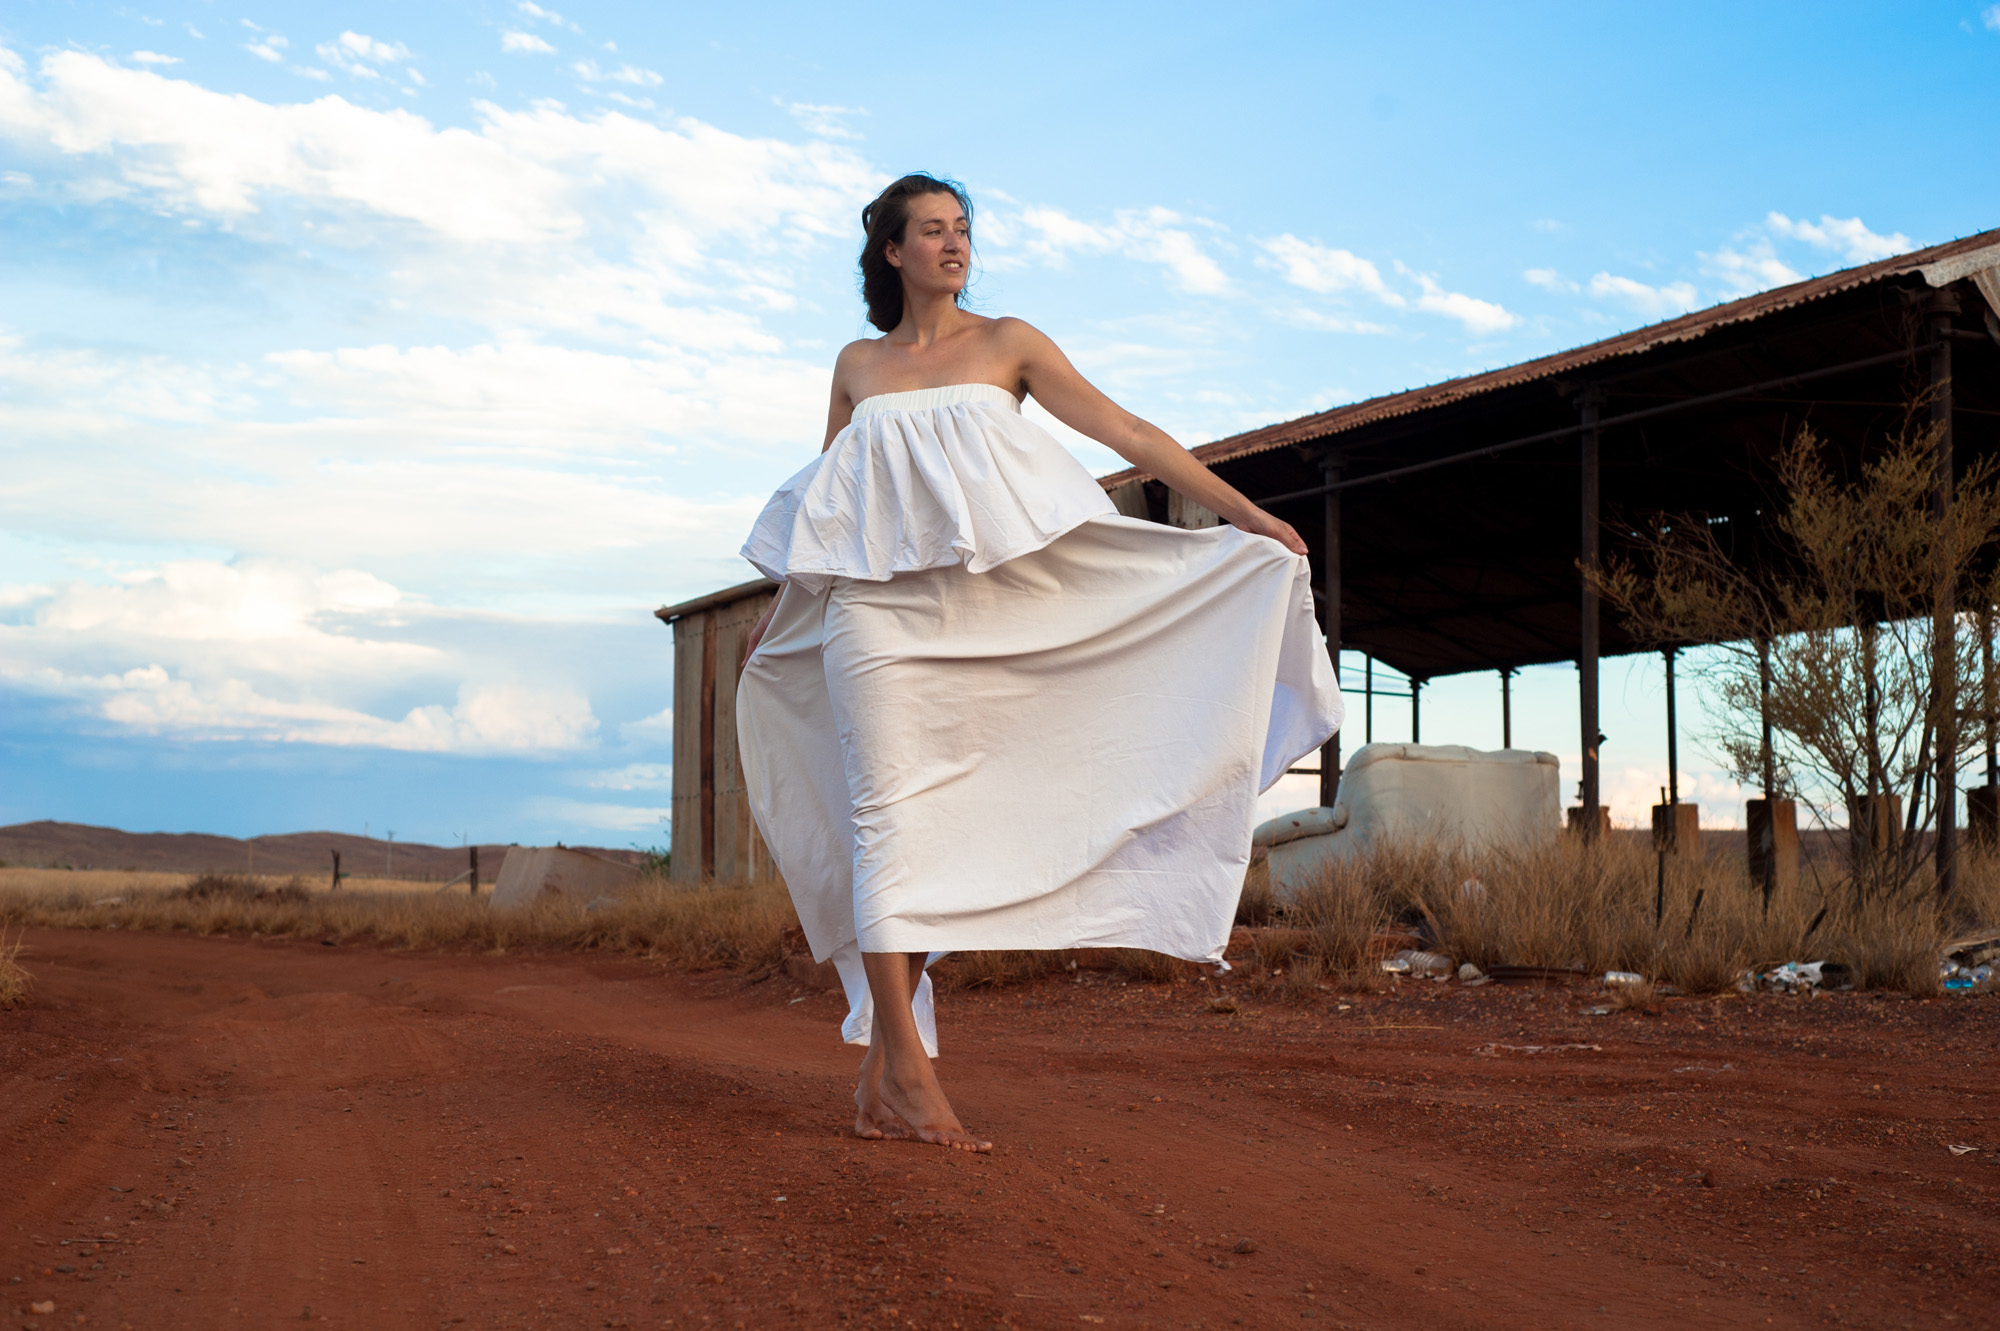 Emma Williamson wears the dress she made from a sheet for The Slow Clothing Project